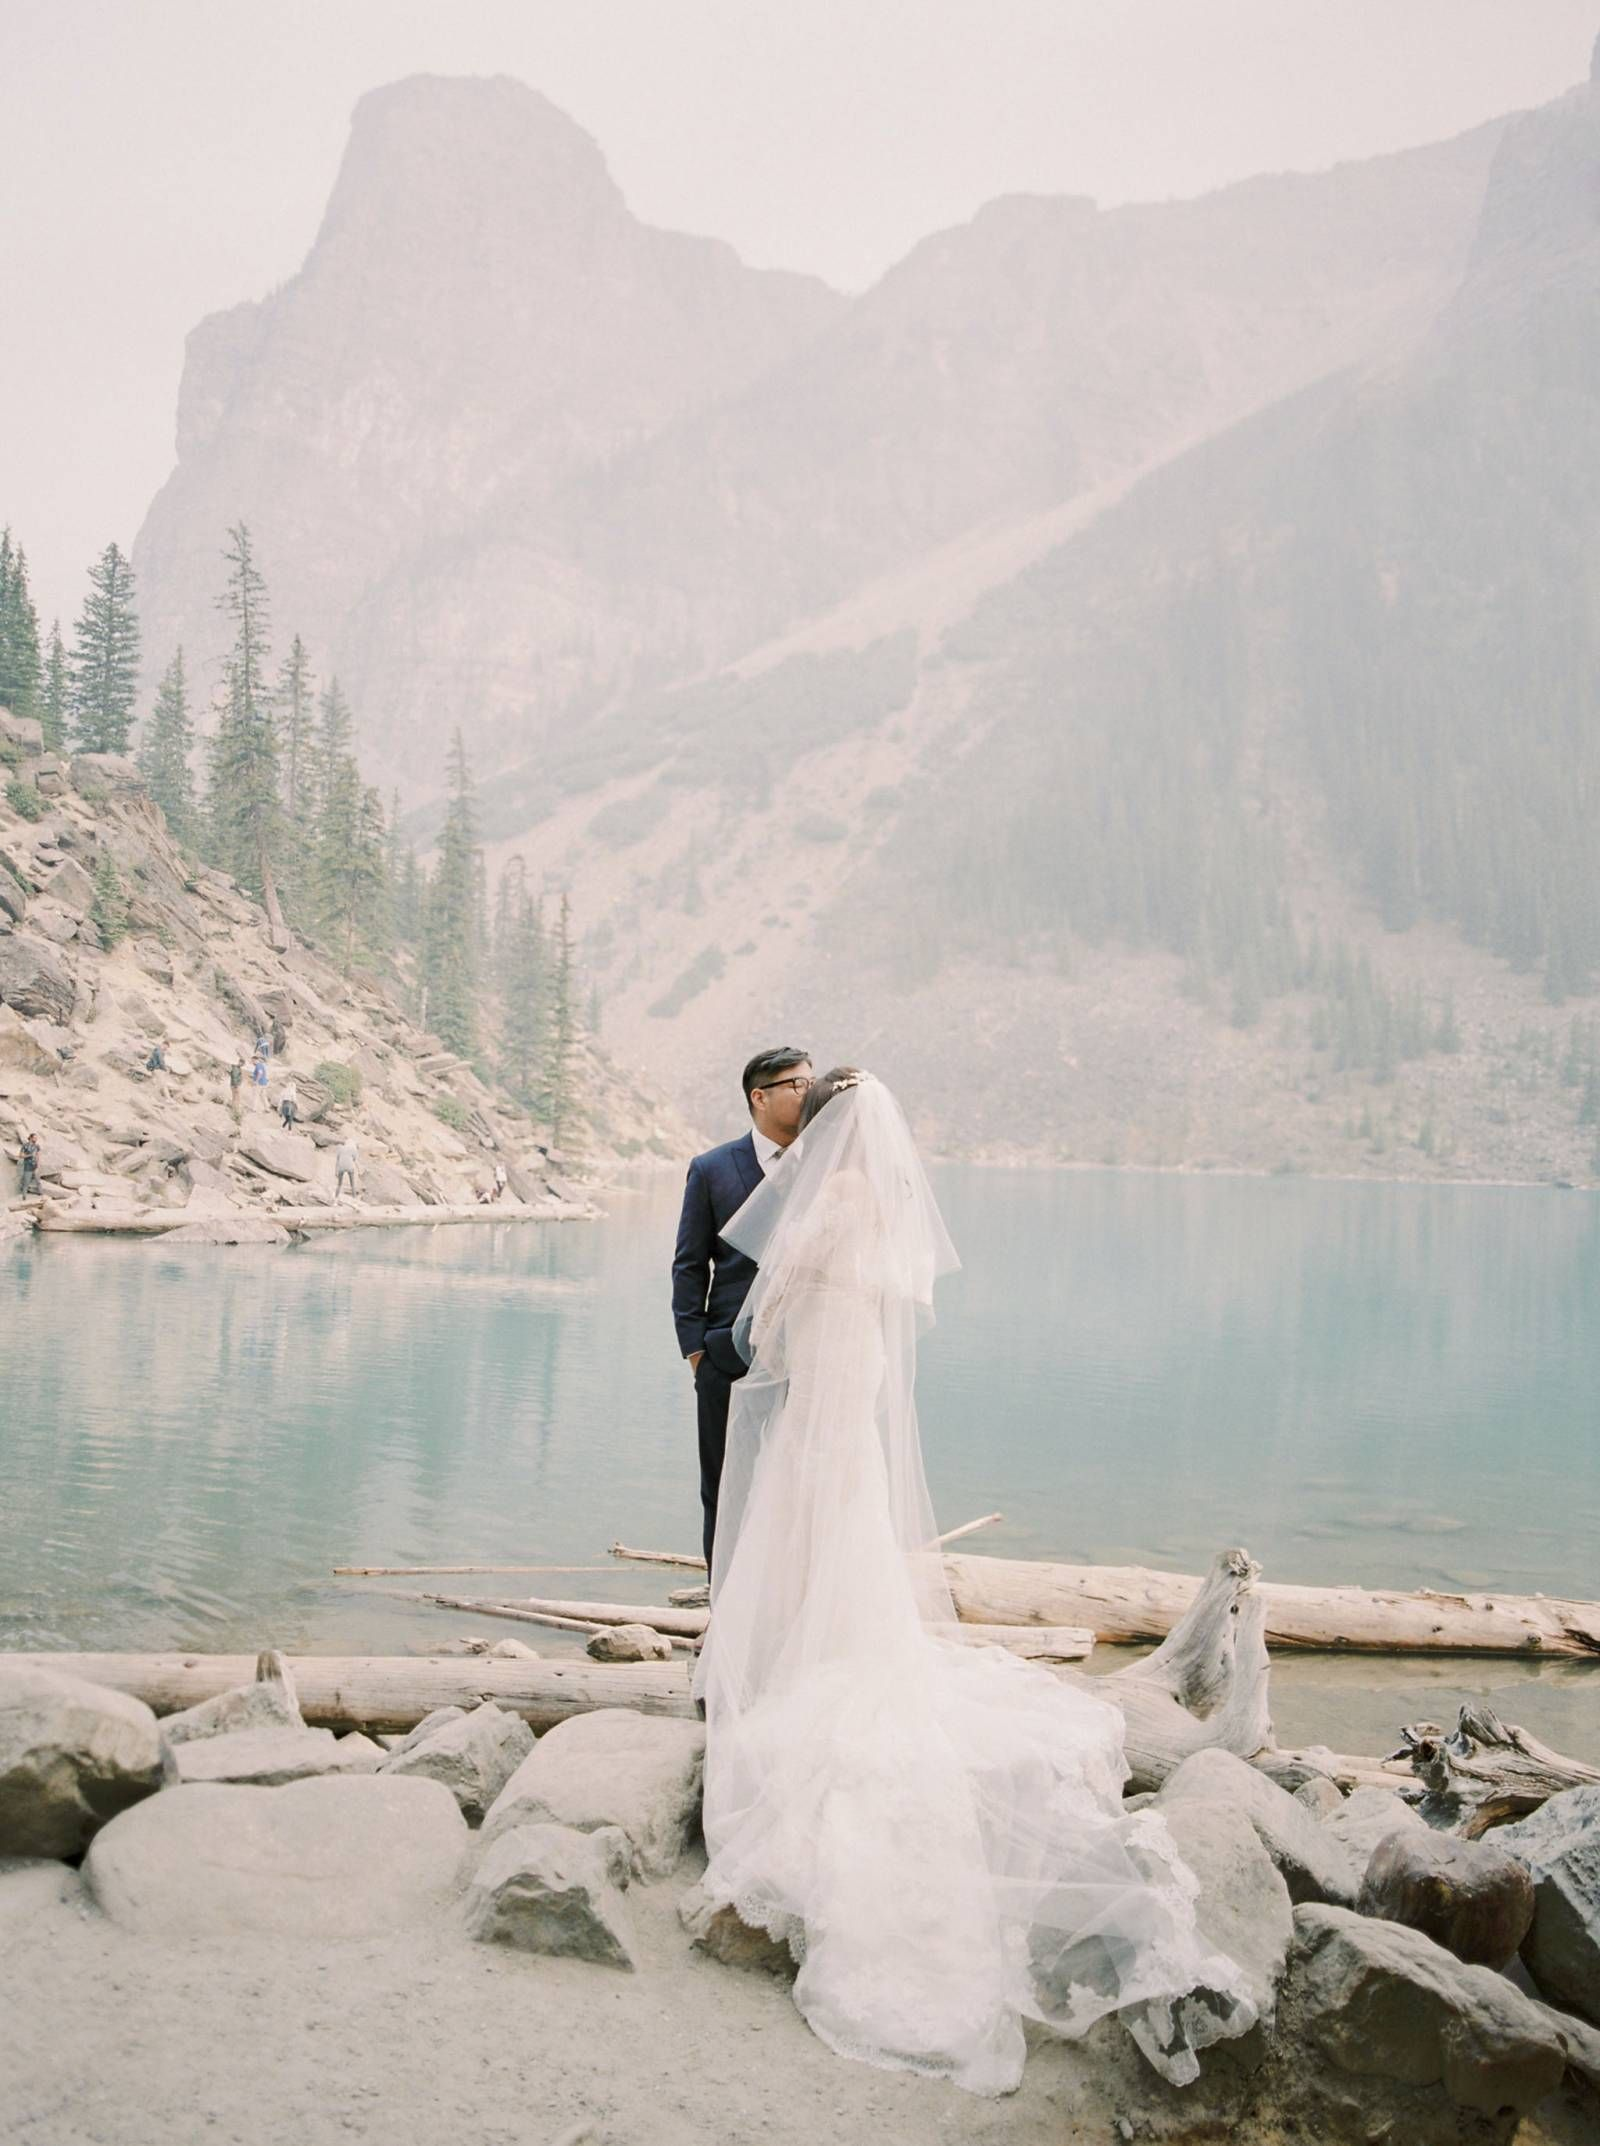 Win an incredible 7k wedding photography package from